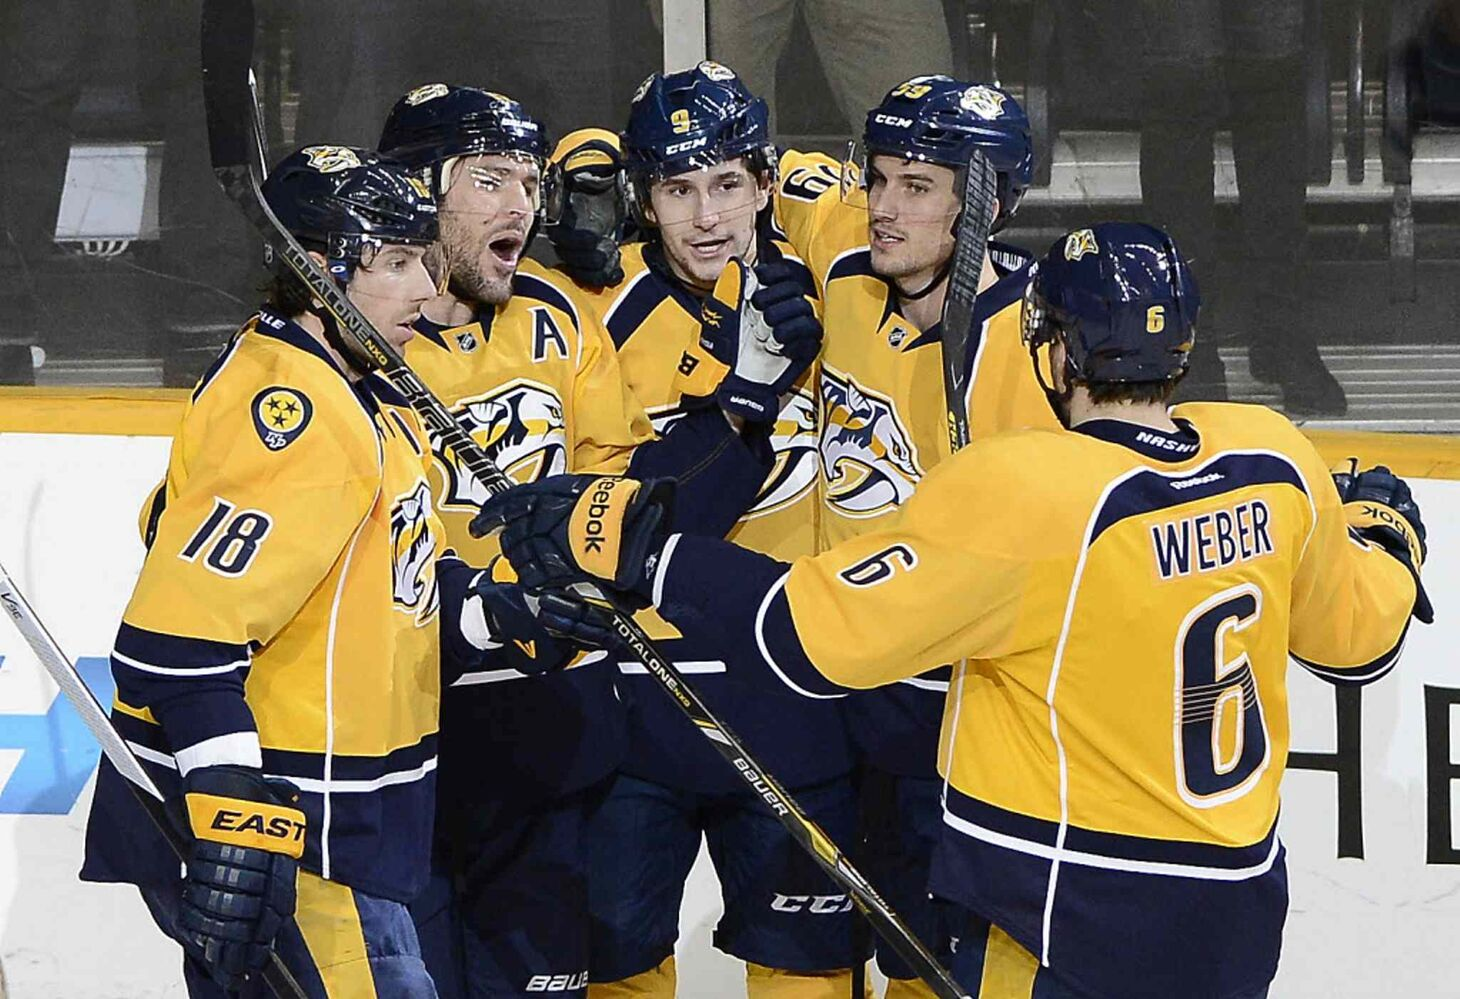 Nashville Predators centre Filip Forsberg, centre, is congratulated after scoring a goal against the Winnipeg Jets in the second period of Thursday's game. (Mark Zaleski / The Associated Press)